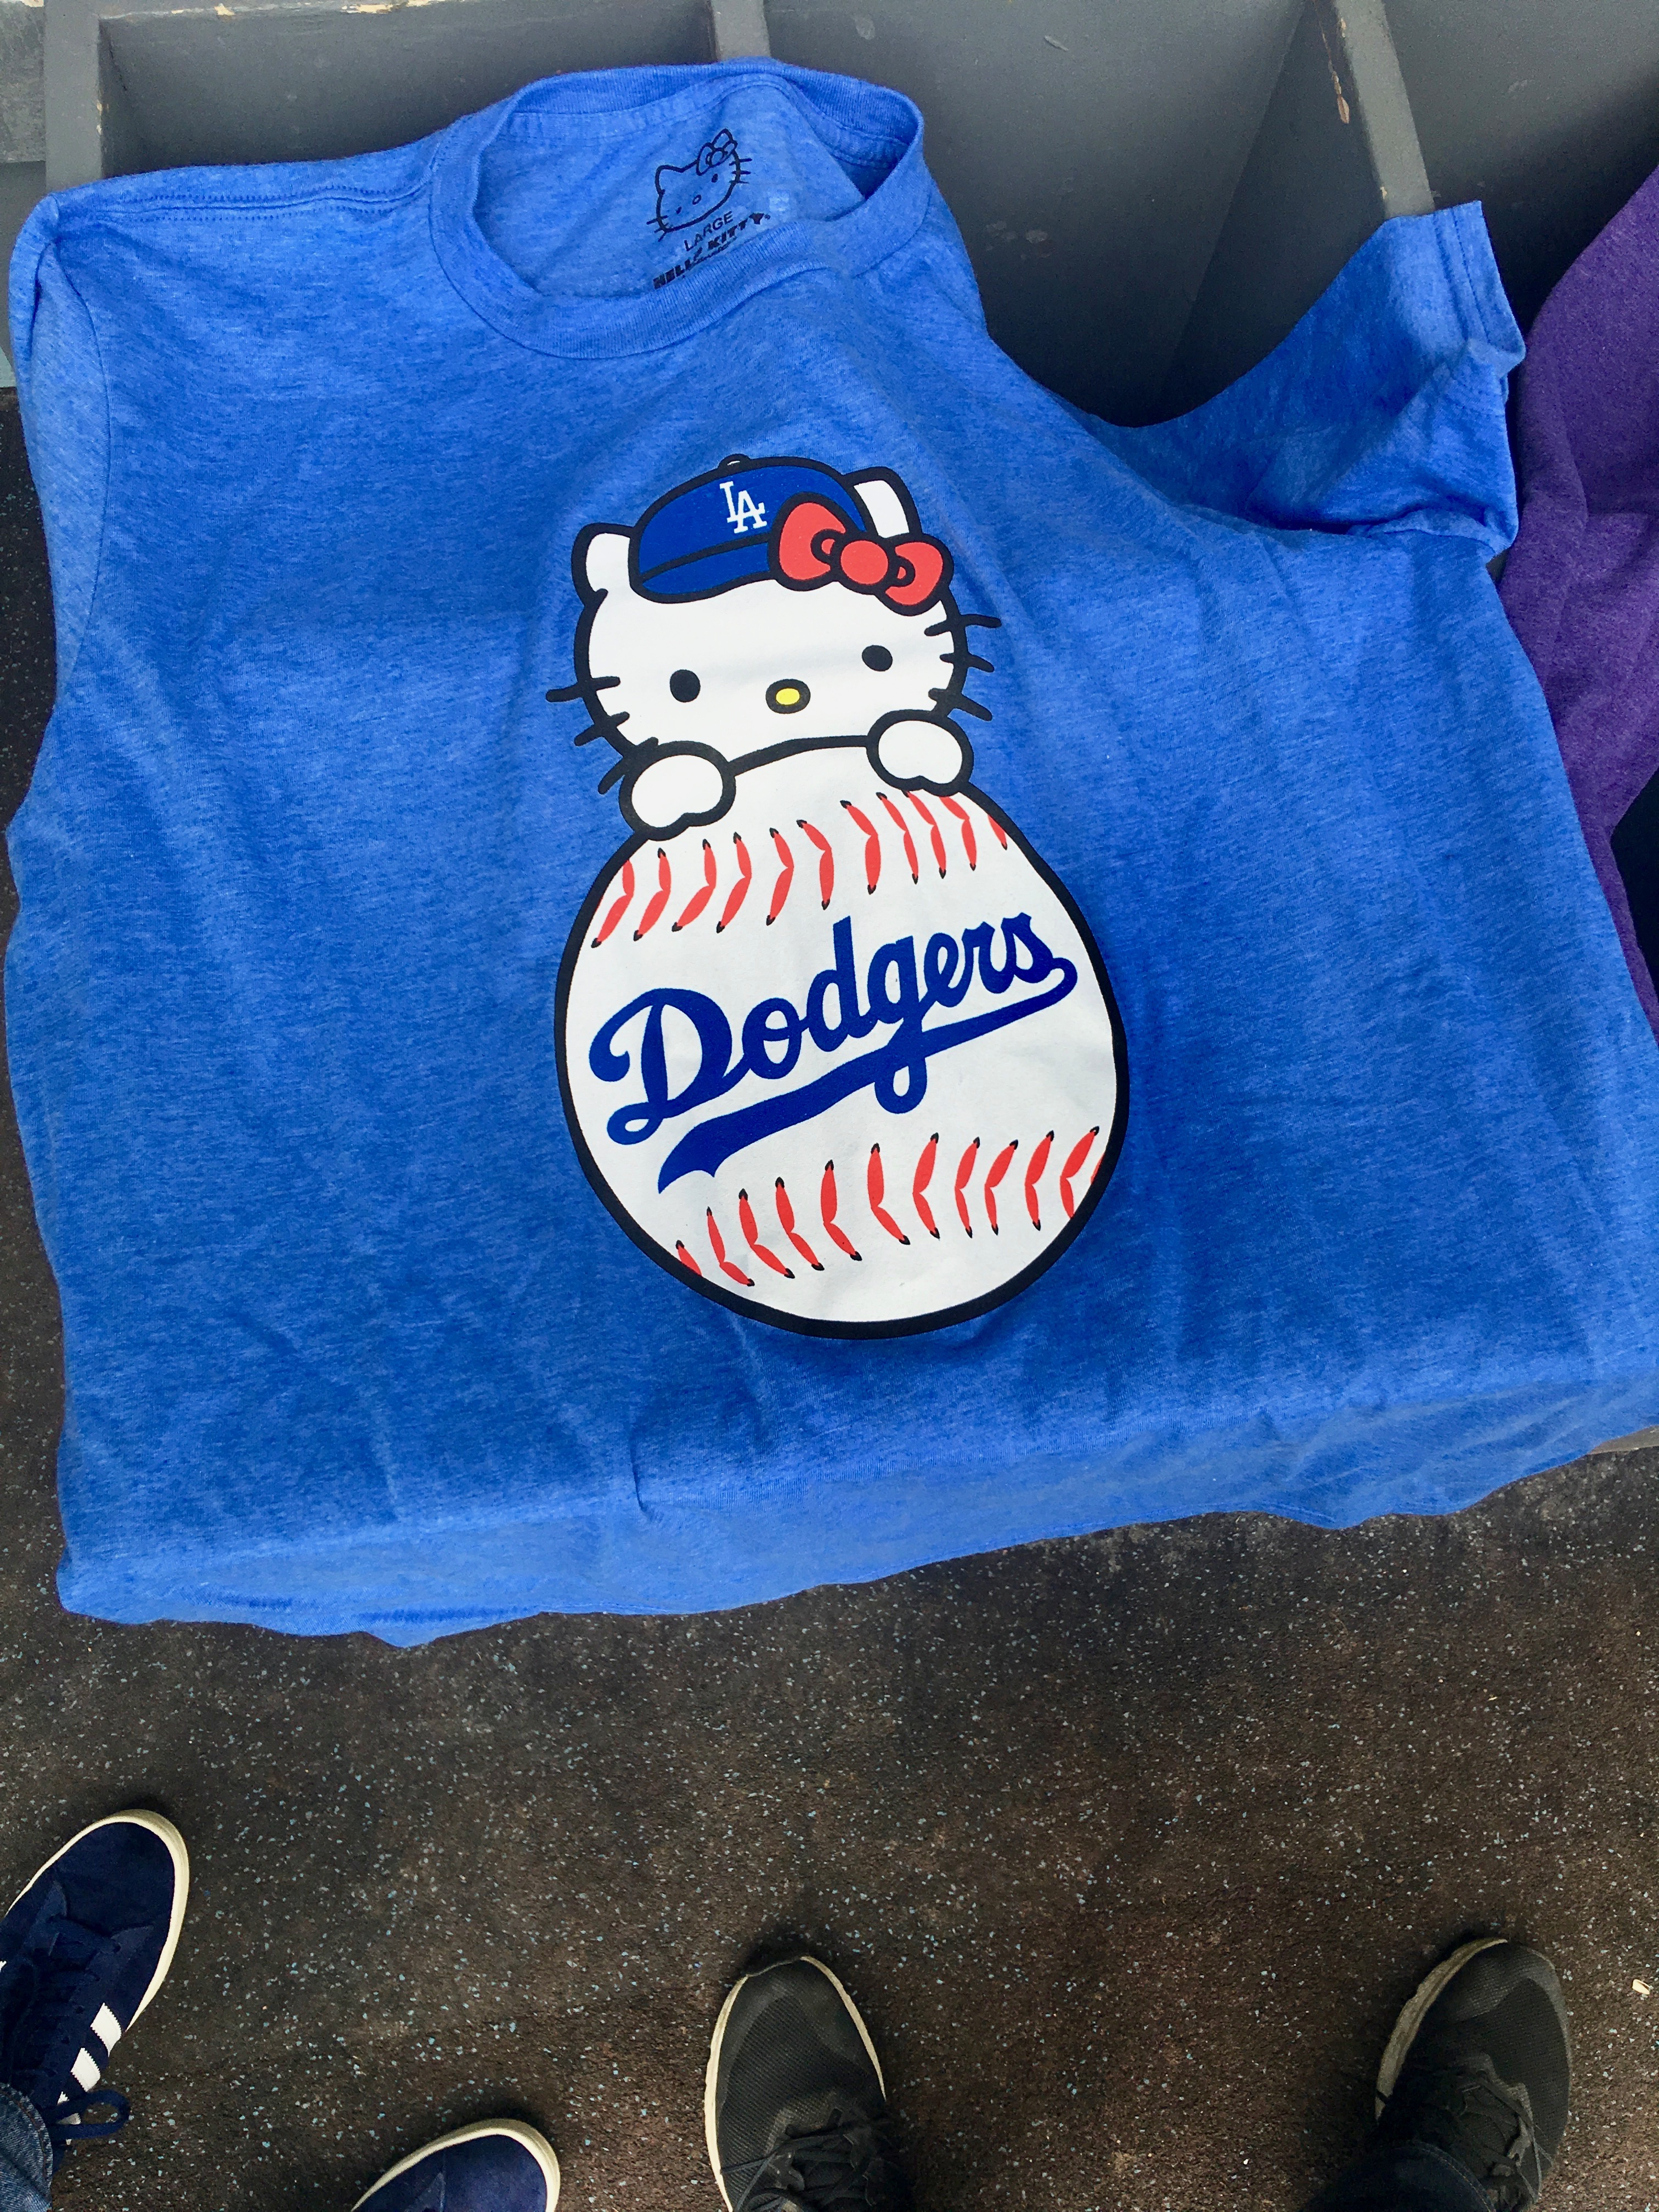 Dodgers Promotional Items